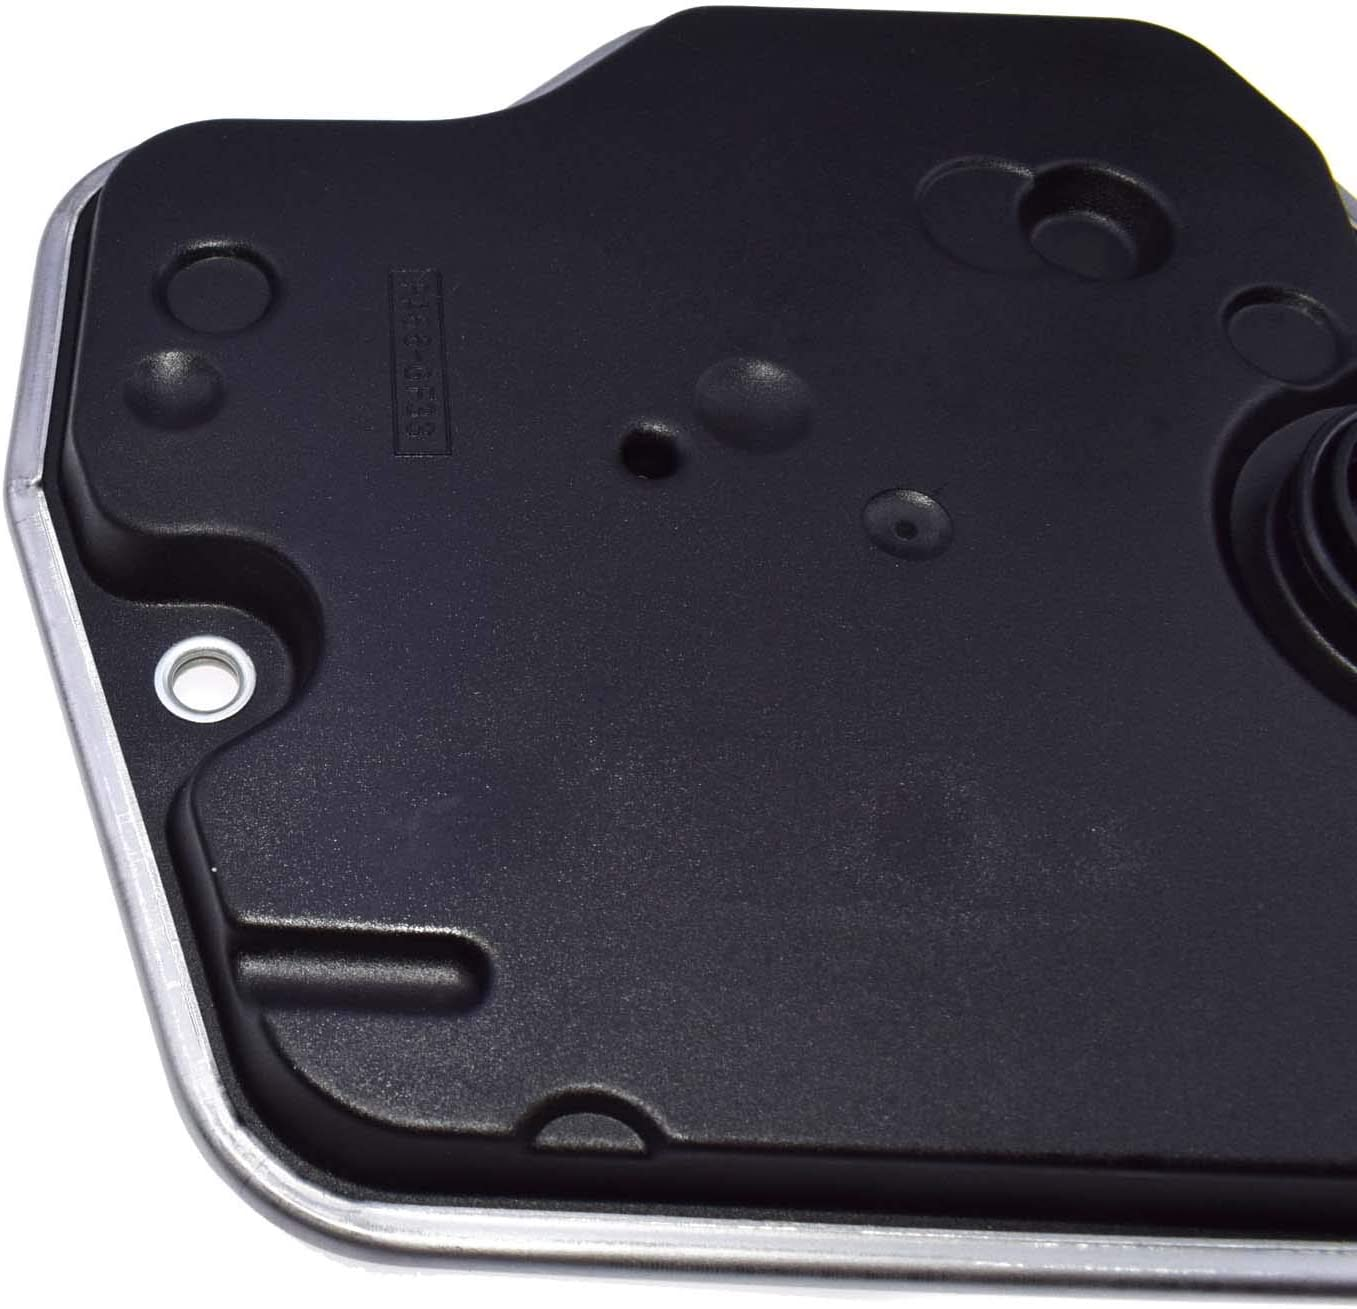 Auto TRANSMISSION OIL STRAINER & O-RING 35330-06010 Fit For TOYOTA ...